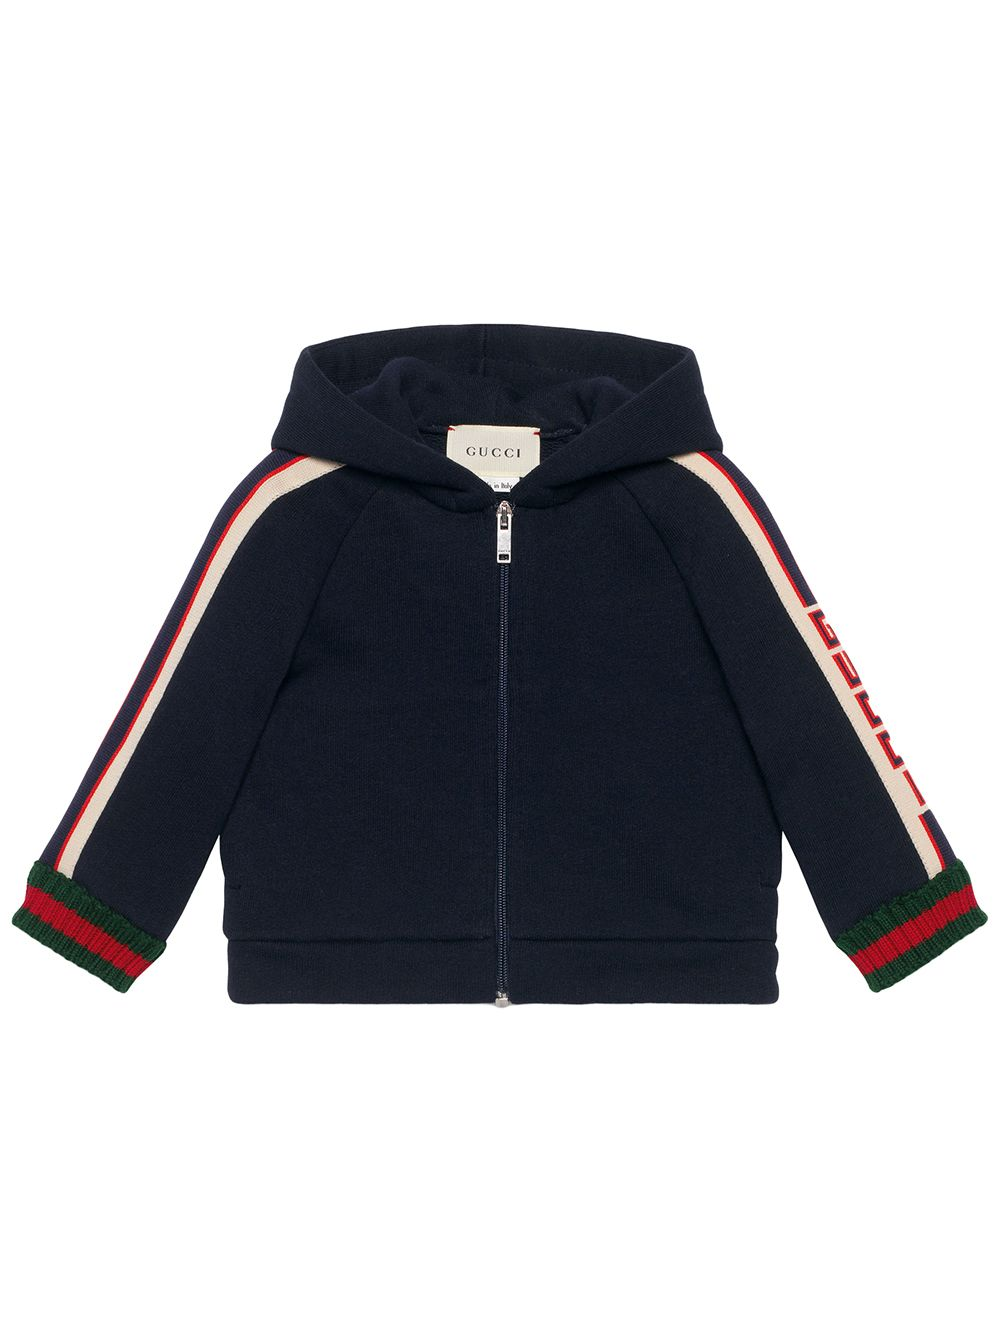 Gucci Kids Baby sweatshirt with Gucci stripe - Blau von Gucci Kids